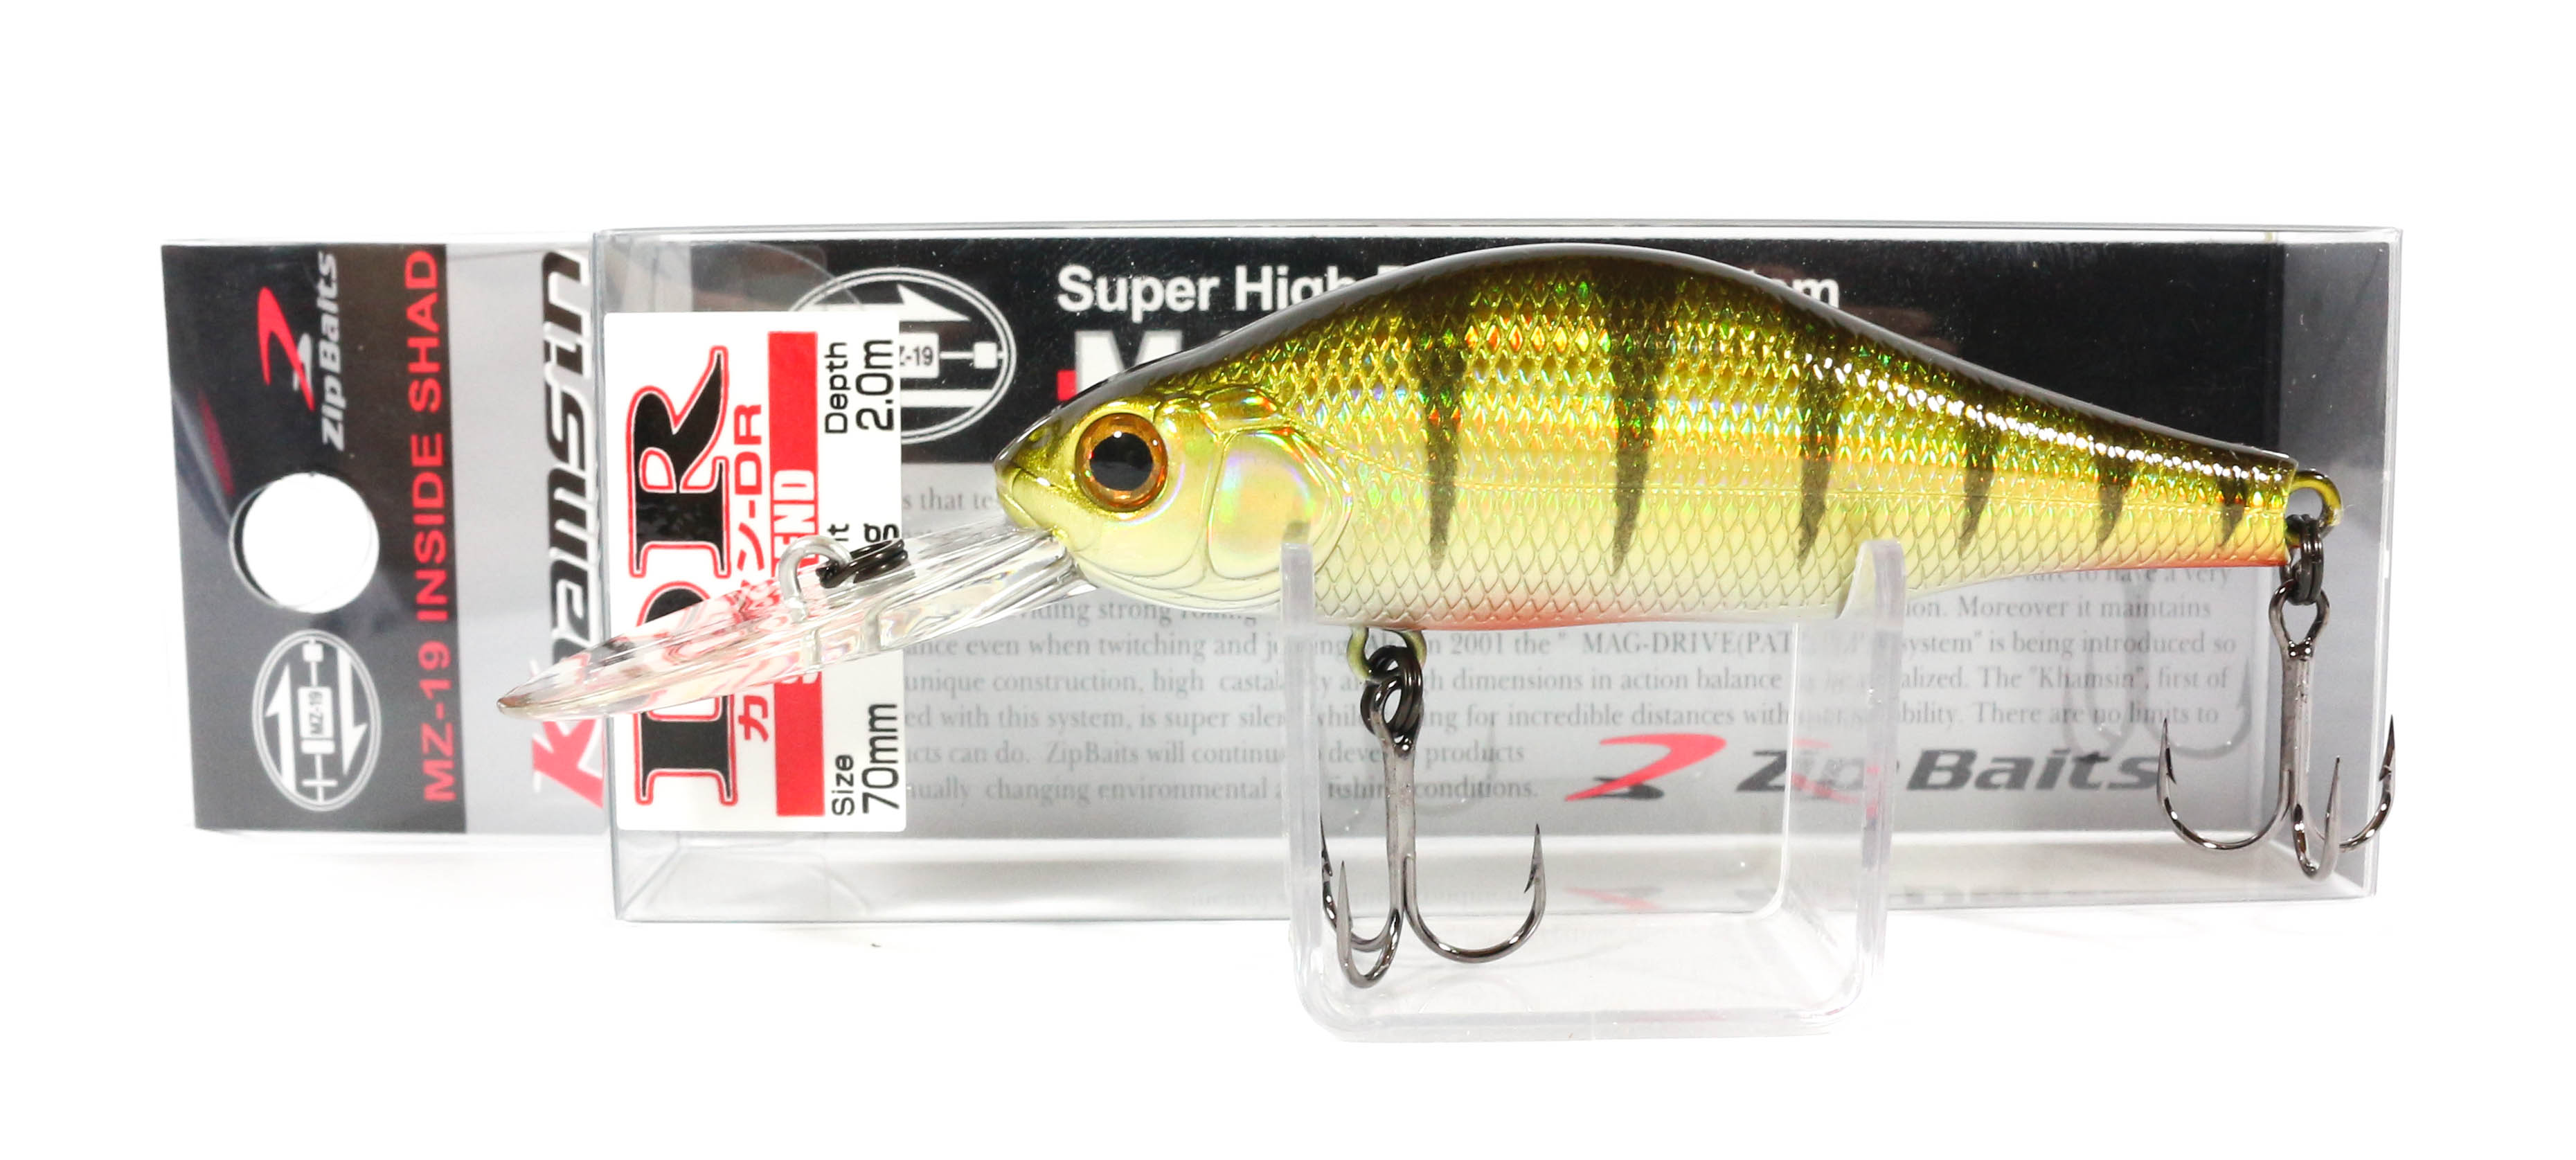 Zipbaits Khamsin DR 70mm Suspend Lure 401 (9307)